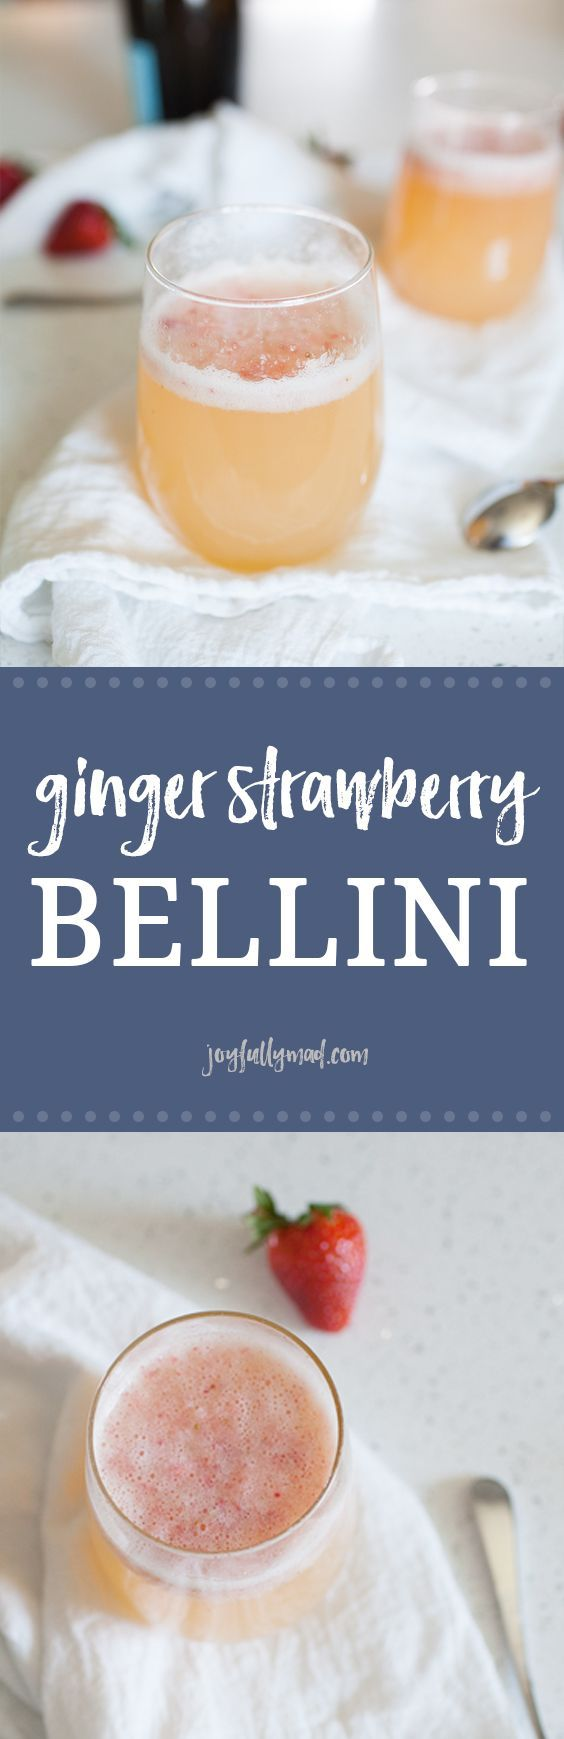 Planning a brunch soon? This Ginger Strawberry Bellini is the perfect brunch cocktail for any occasion! With a fresh strawberry purée, orange juice, ginger ale and Prosecco, this is not your average Bellini recipe!